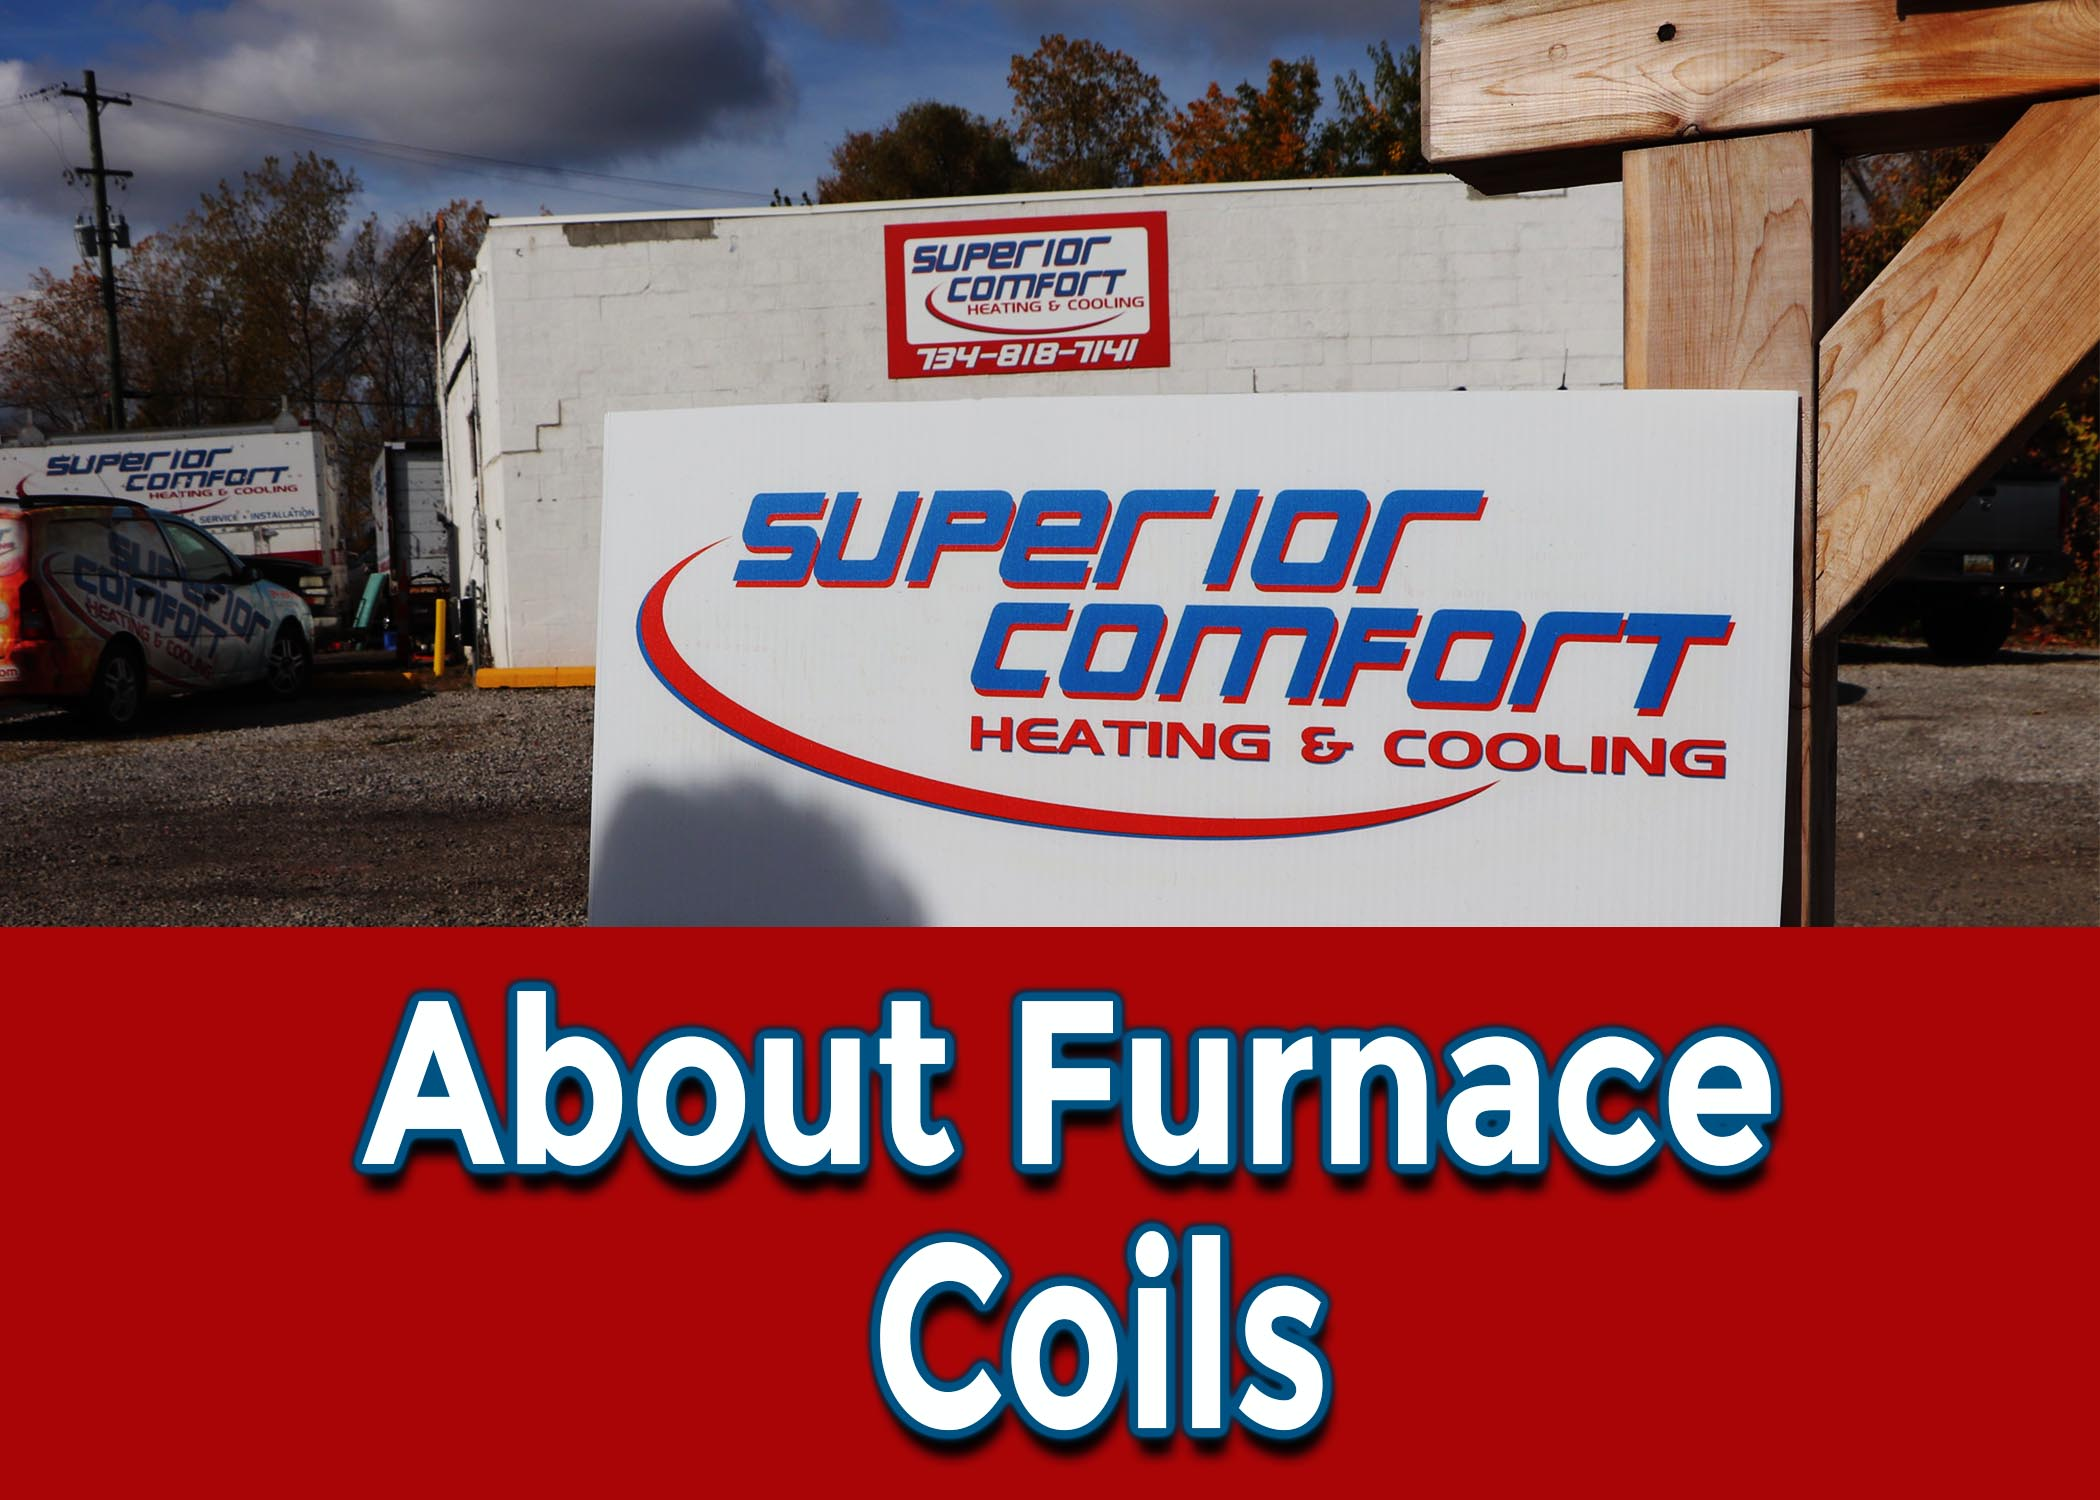 What You Don't Know About Furnace Coils